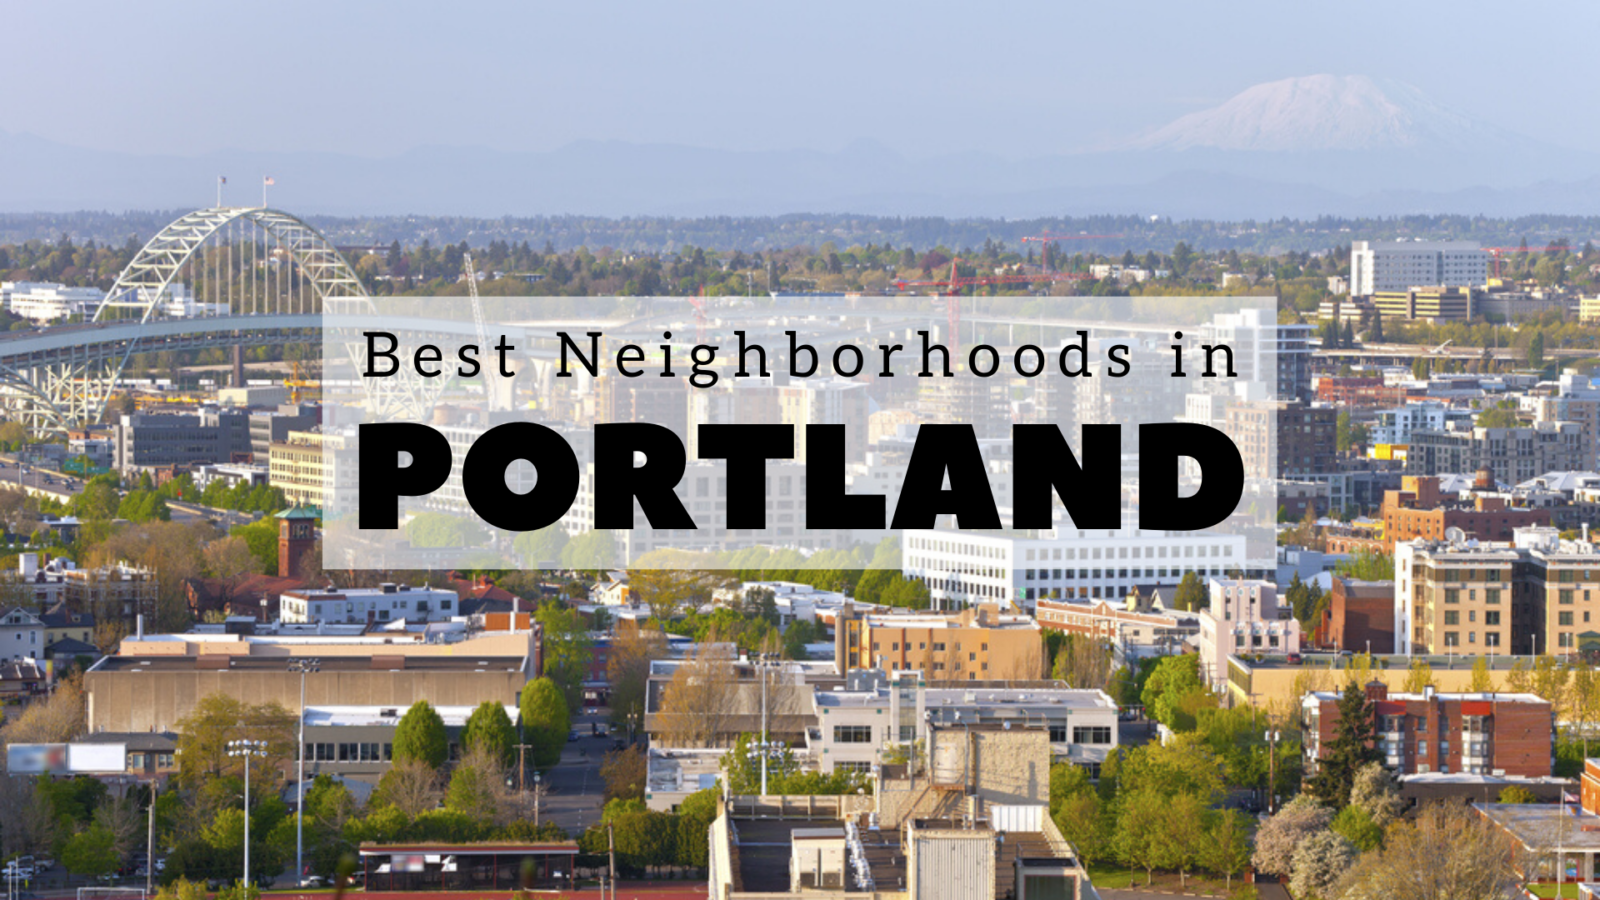 Best Neighborhoods in Portland